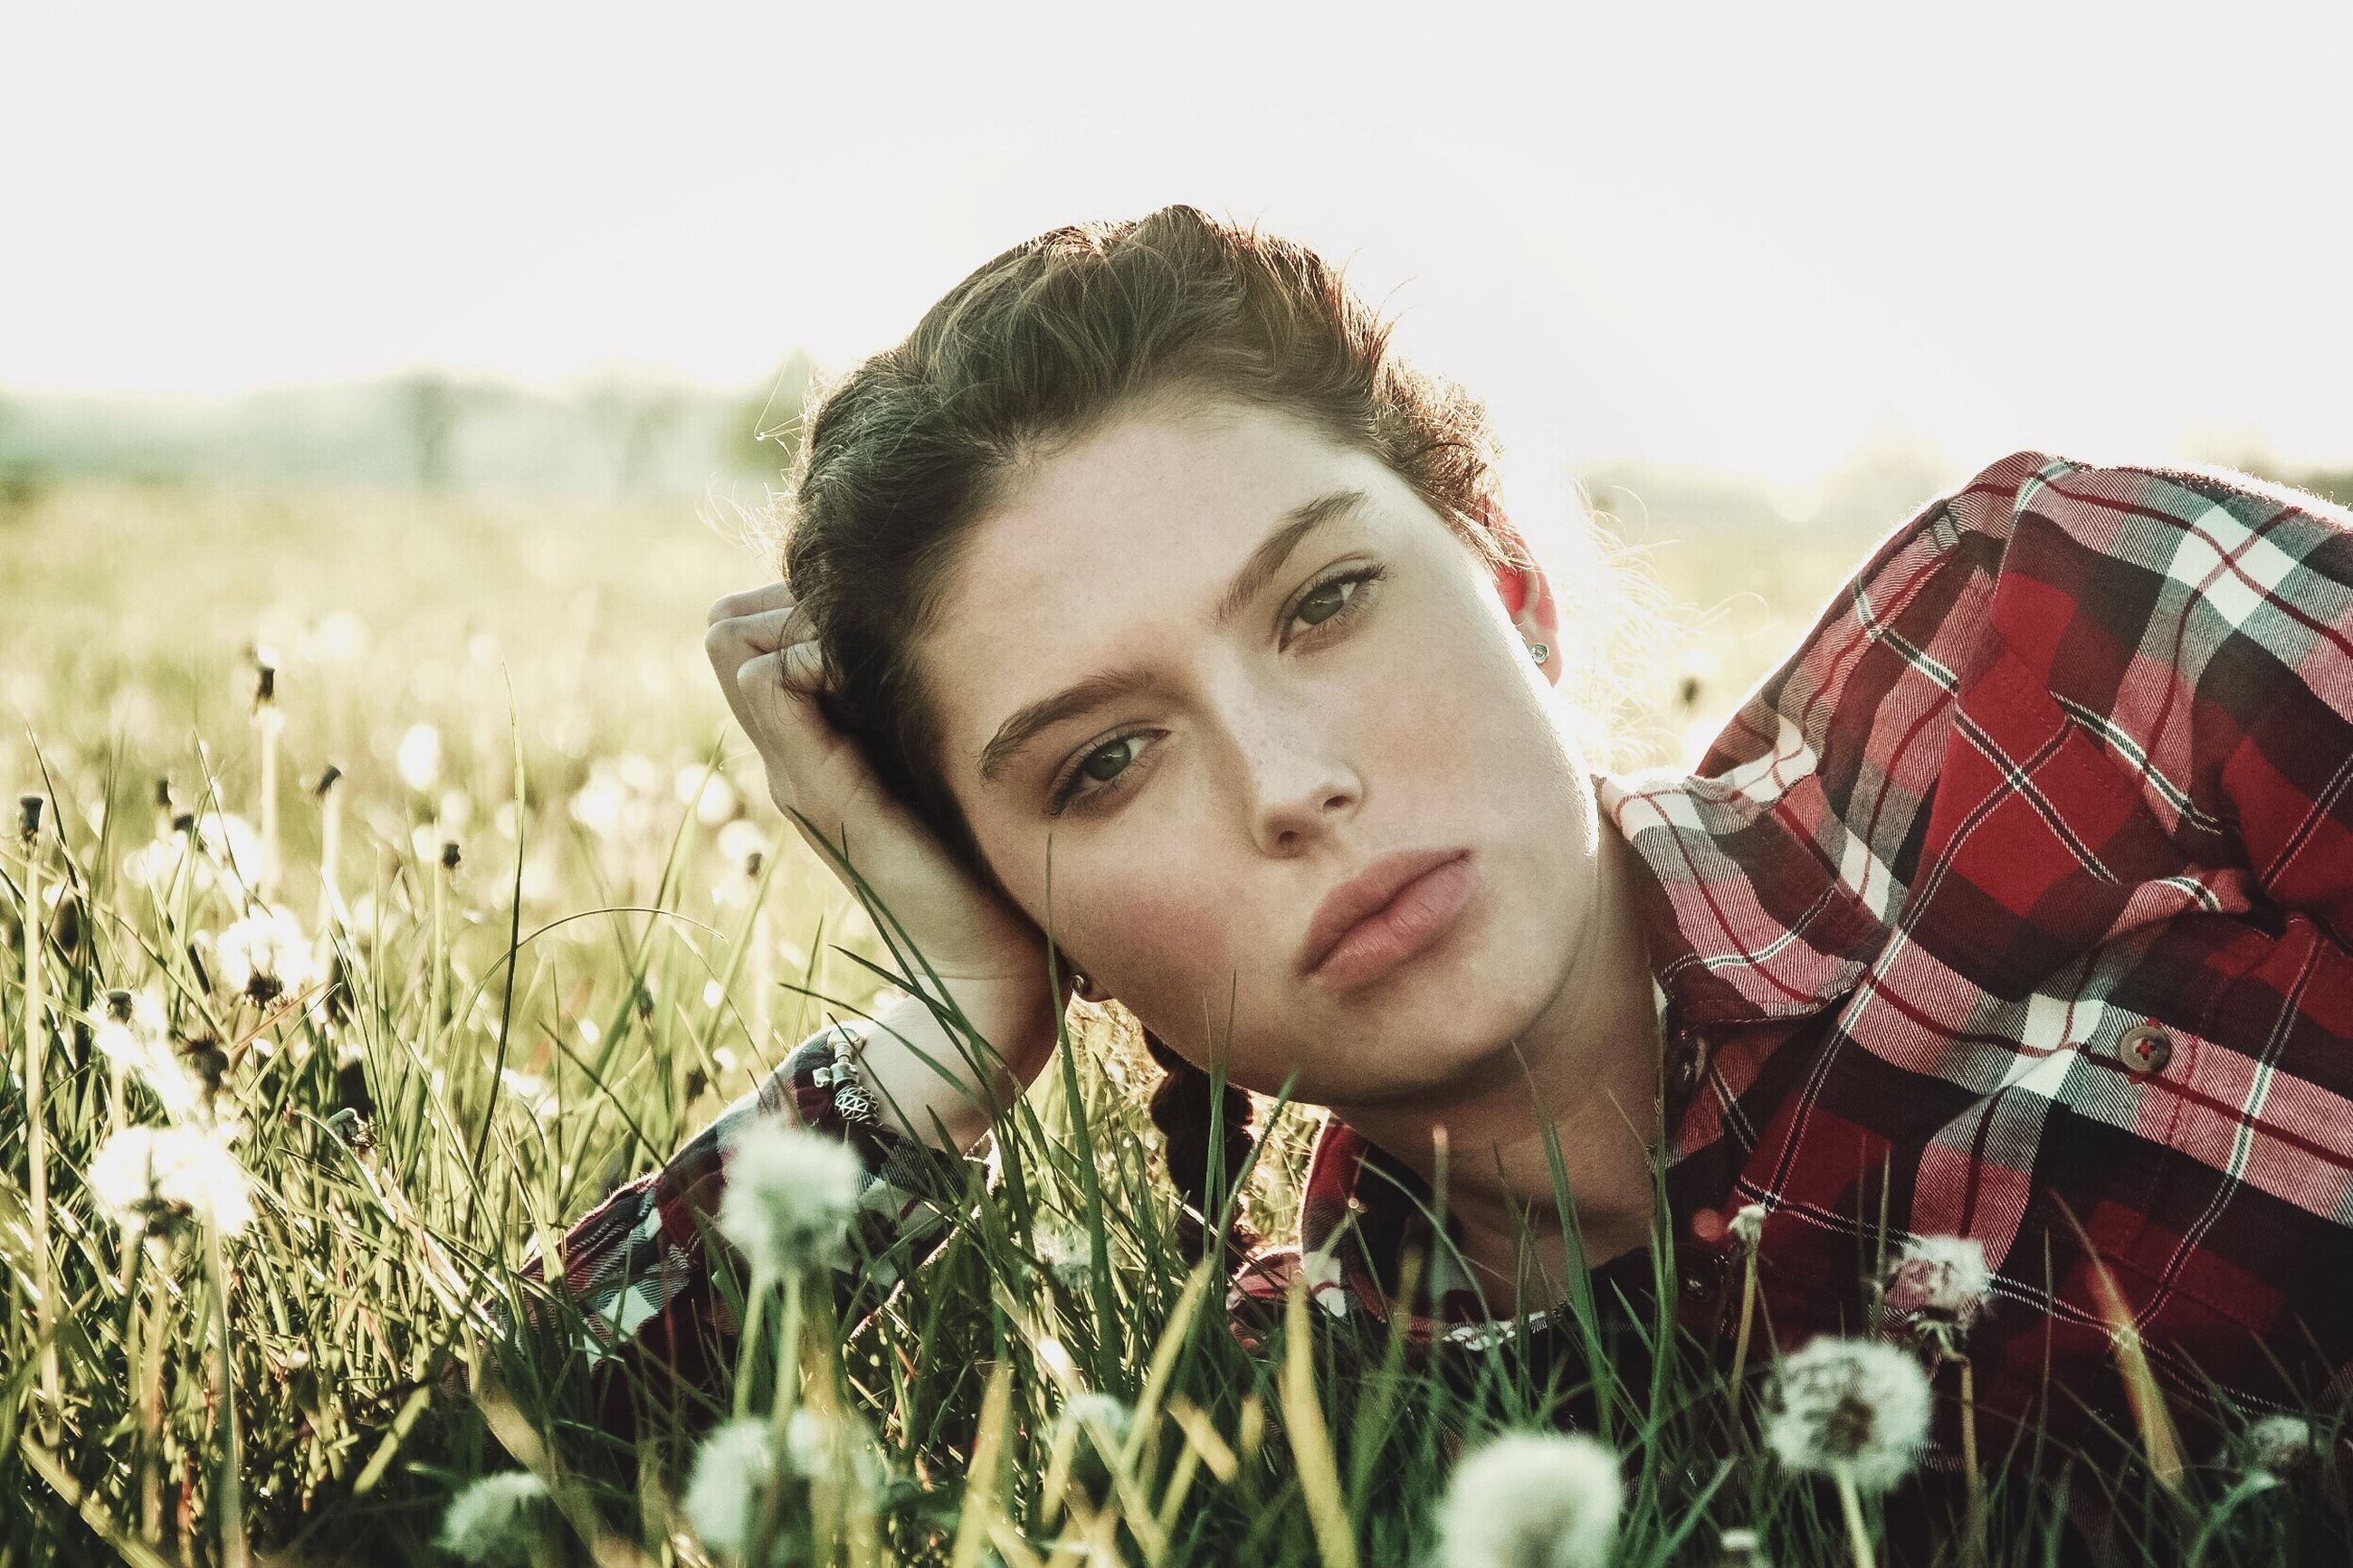 person, focus on foreground, field, lifestyles, leisure activity, flower, portrait, plant, looking at camera, young adult, close-up, growth, young women, front view, headshot, casual clothing, grass, nature